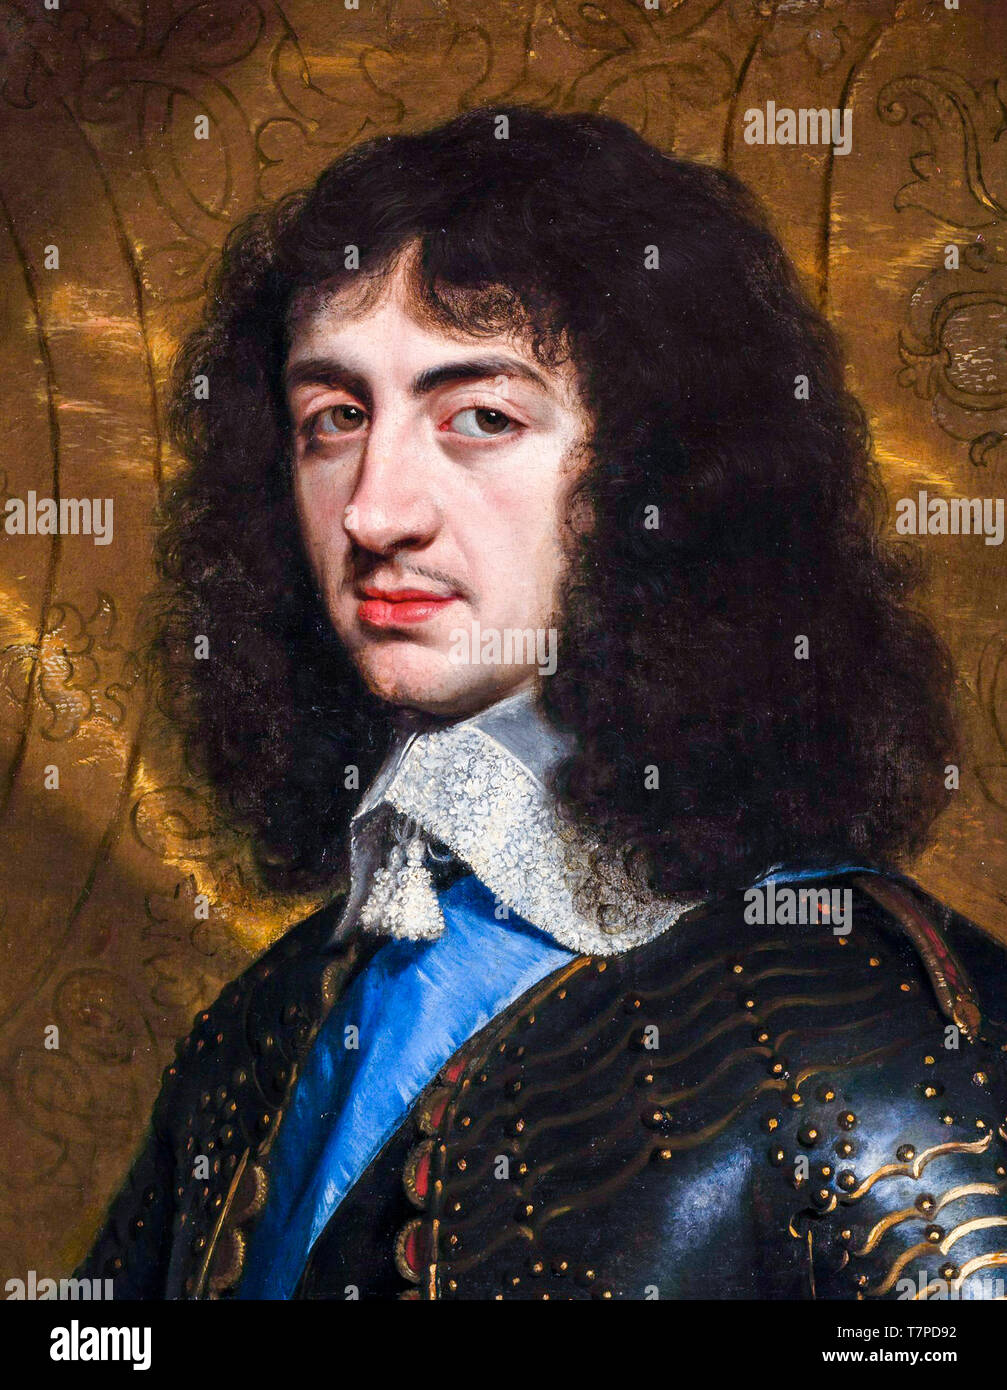 King Charles II of England (1630-1685), portrait, painting by Philippe de Champaigne 1653 - Stock Image